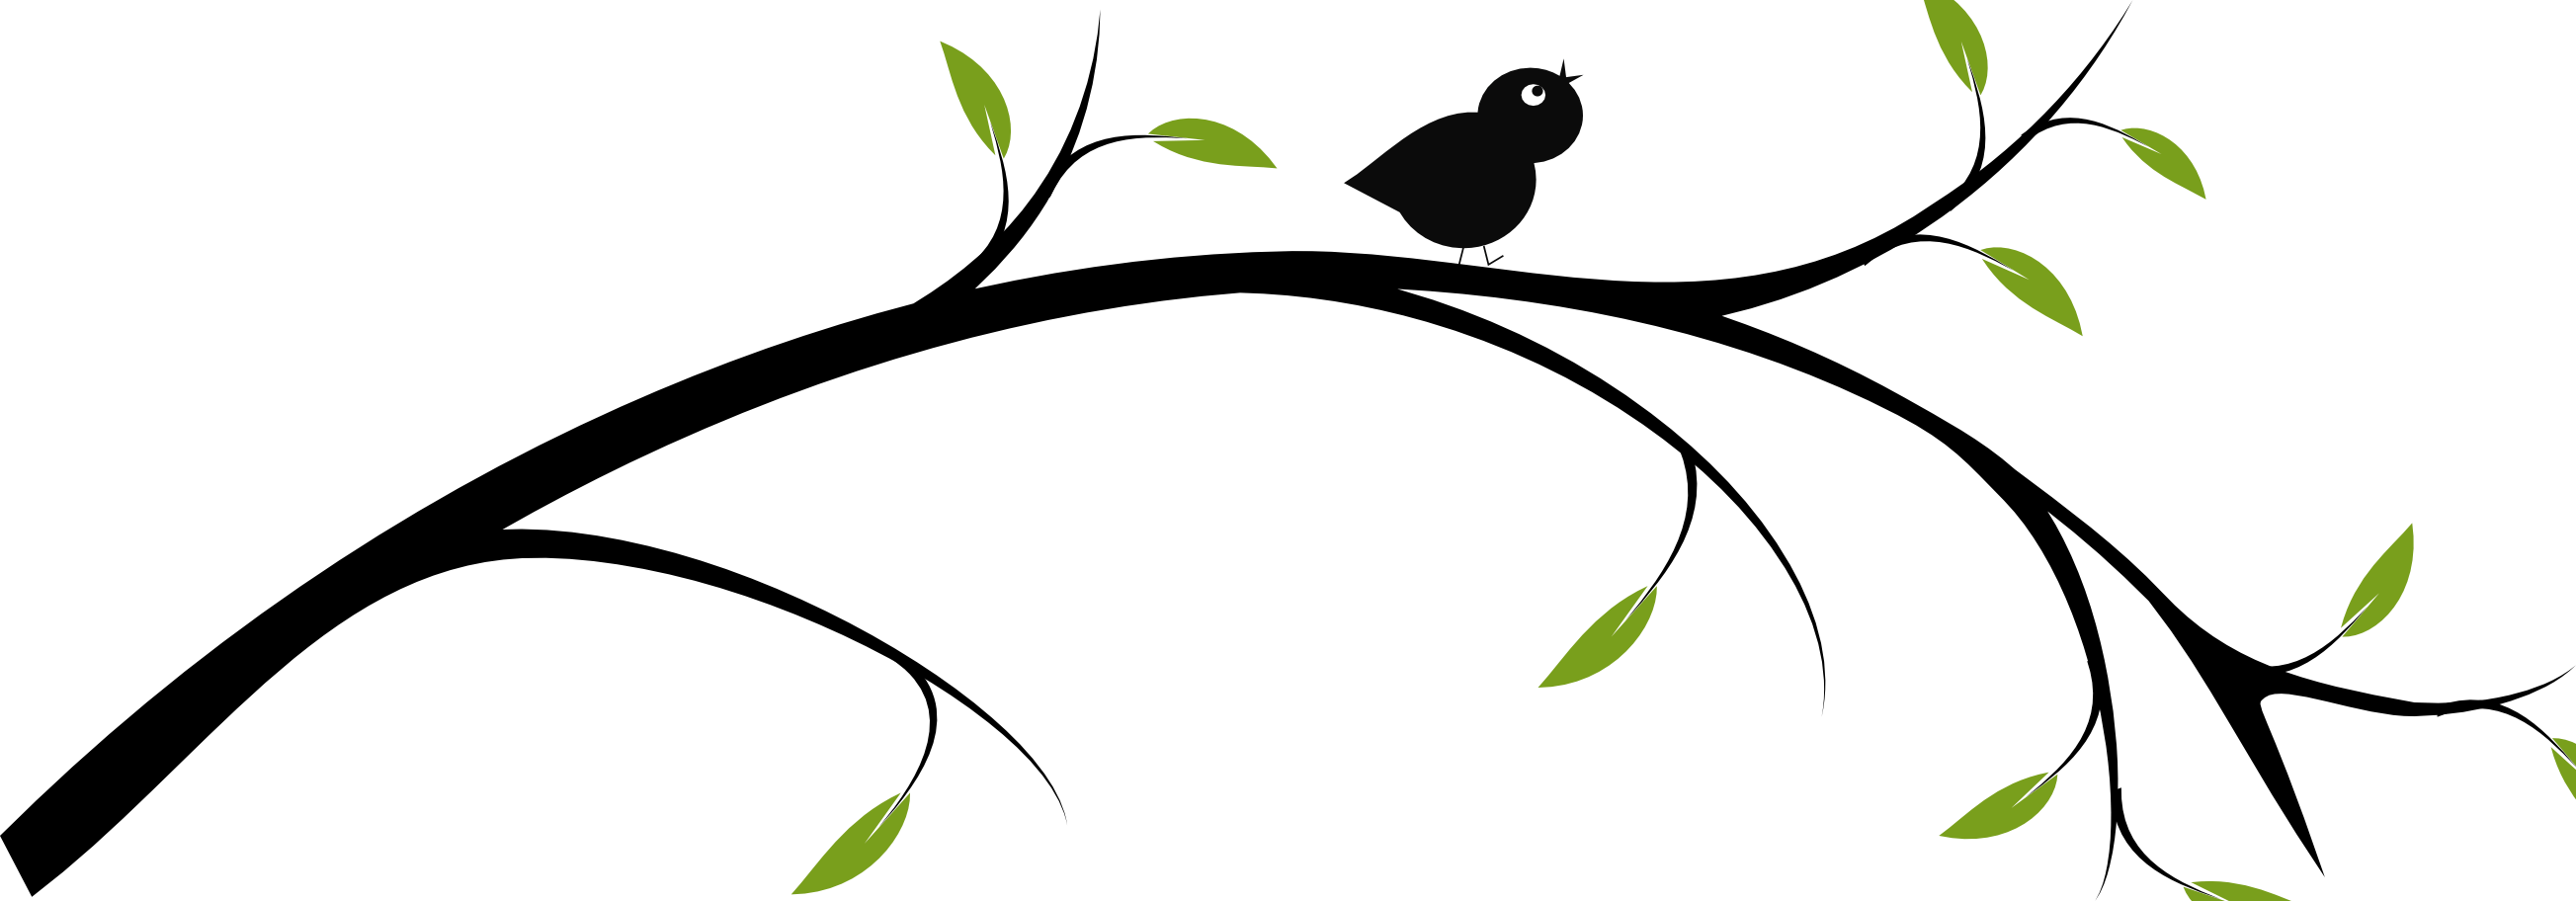 Simple Inkscape Tutorial How To Draw A Tree Branch Amp 171